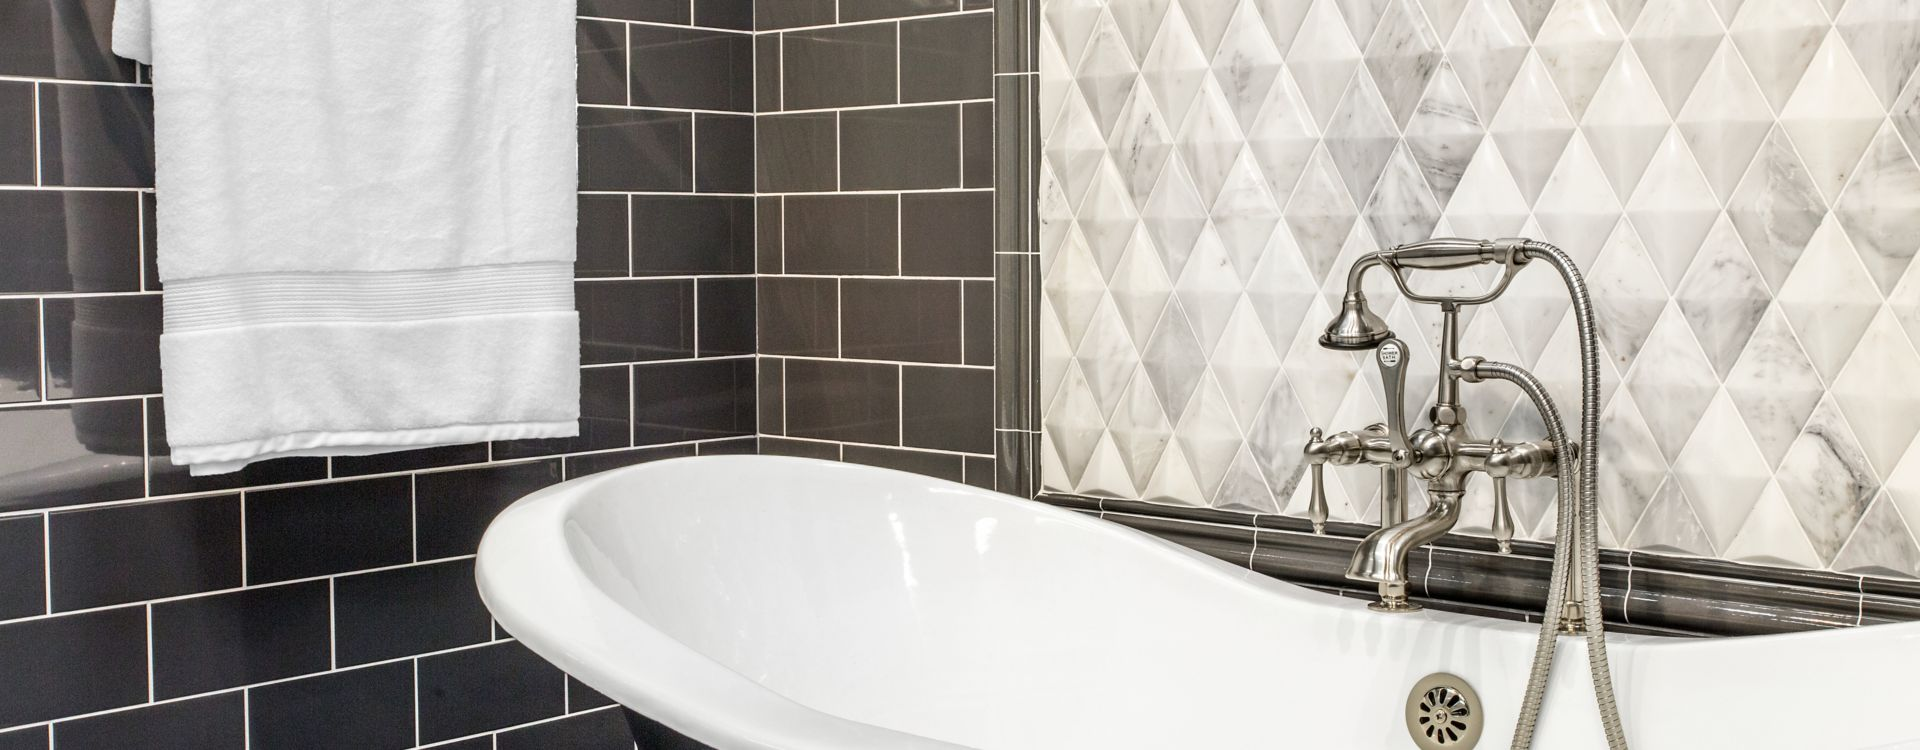 bathroom dark cement look wall tiles.